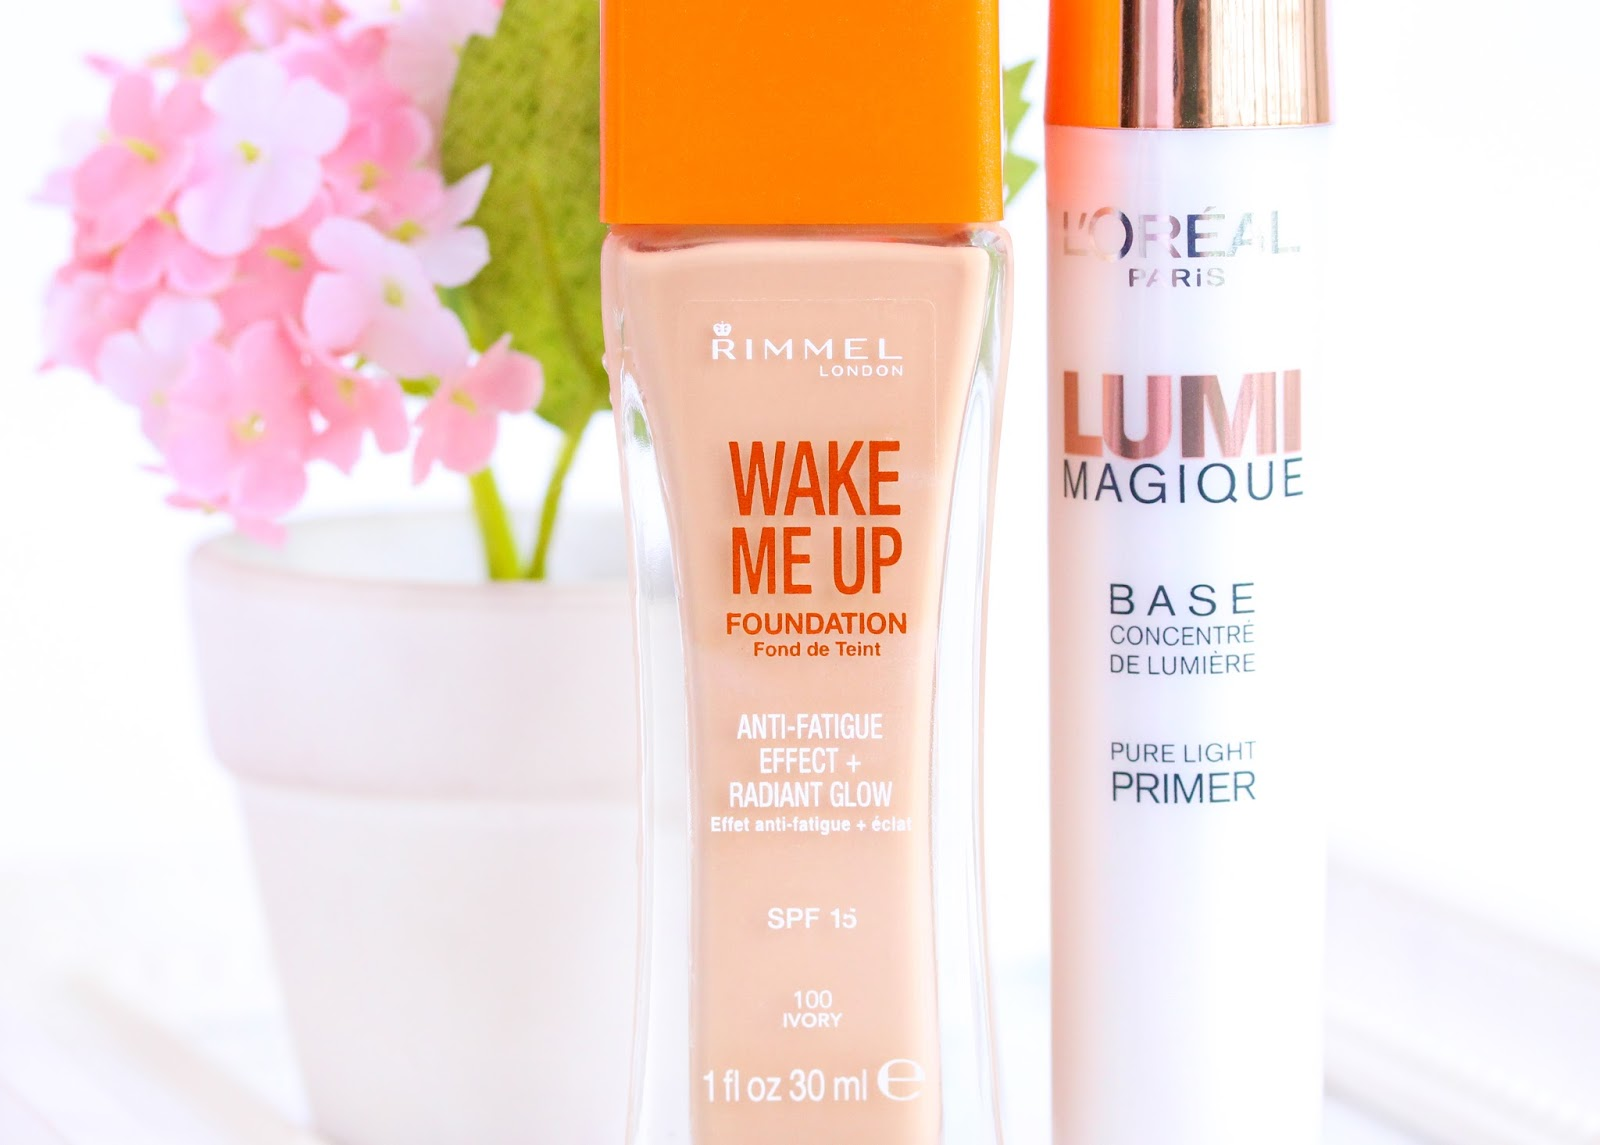 Glowing complexion products - Rimmel Wake Me Up Foundation and Loreal Limi Magique Primer